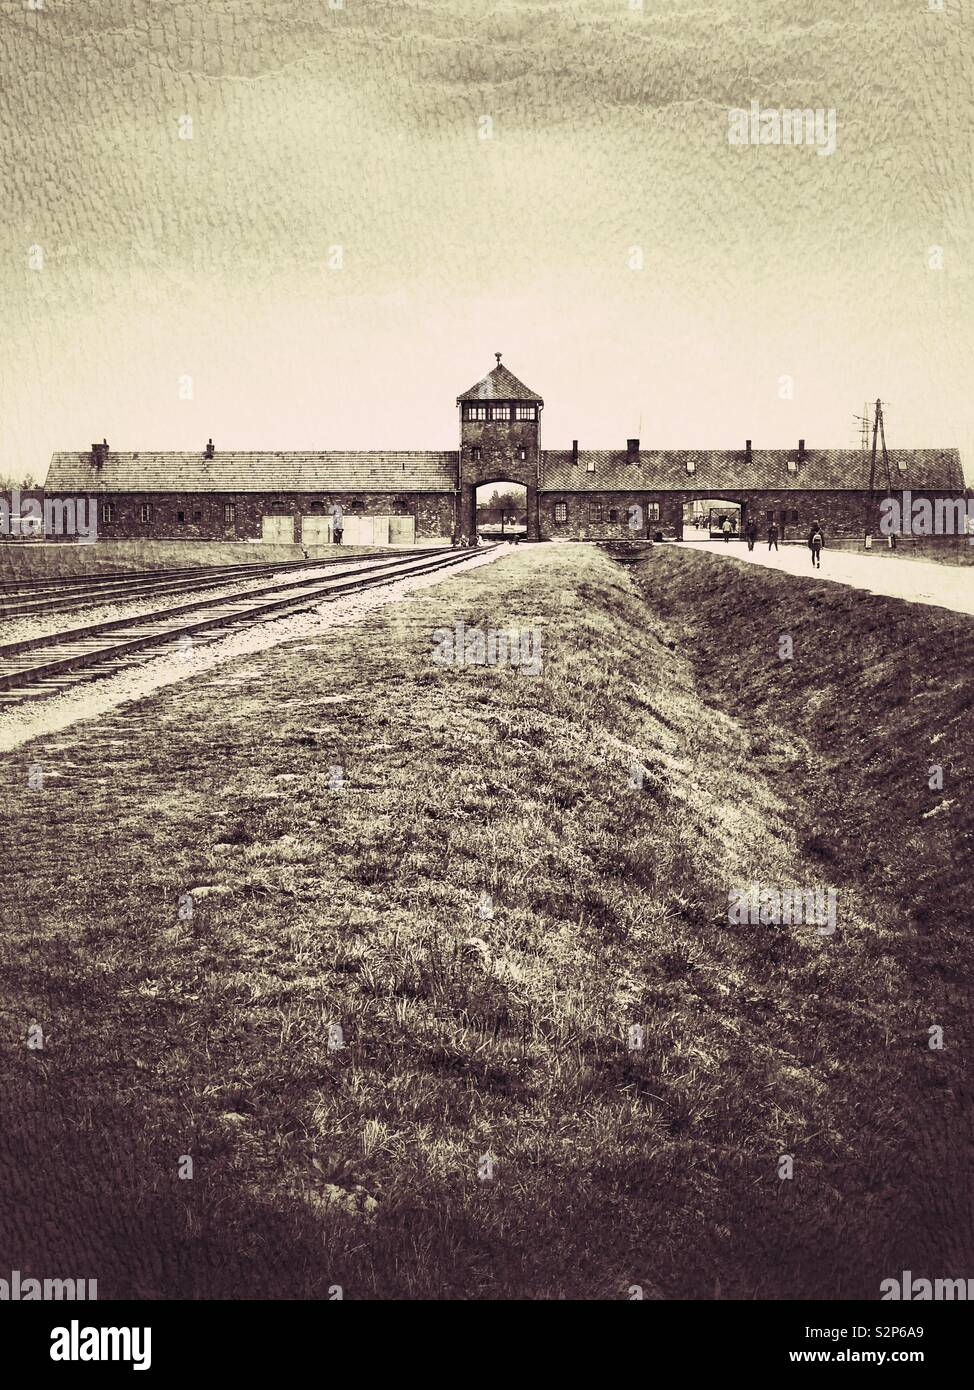 The Gatehouse (Gate Of Death) at the Nazi Auschwitz II Birkenau Concentration Camp in Poland. The railway line offloading site of many thousands of Jewish people who were exterminated by the Nazi's. - Stock Image